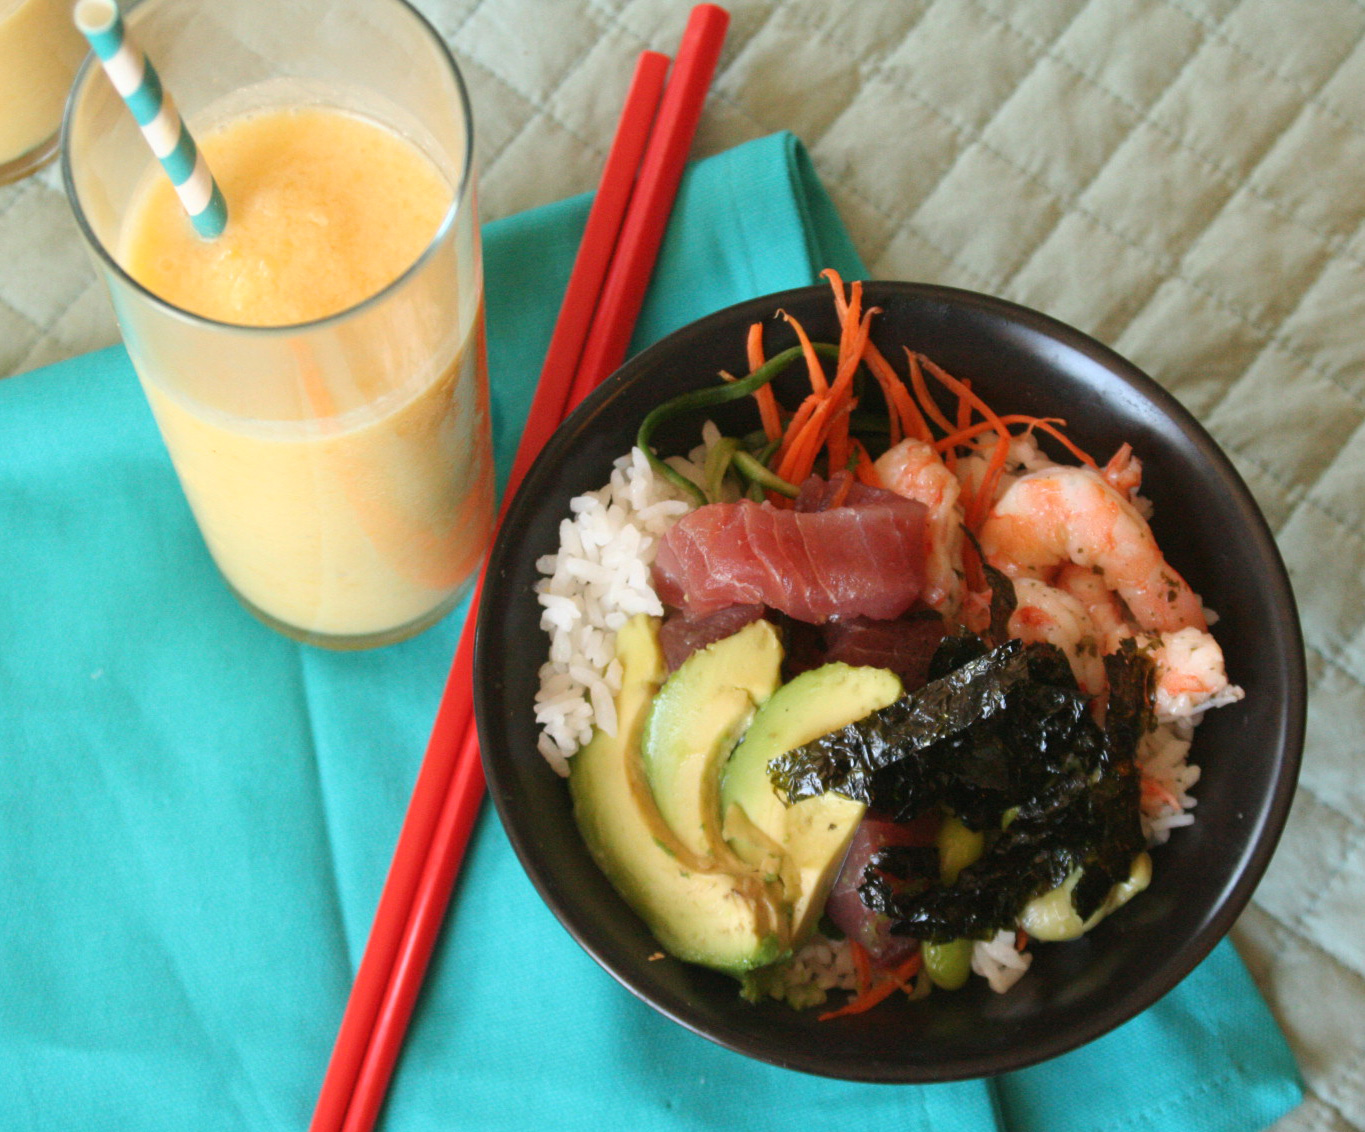 Sushi Salad and Mango Pineapple Coconut Slush for a Gluten Free Picnic